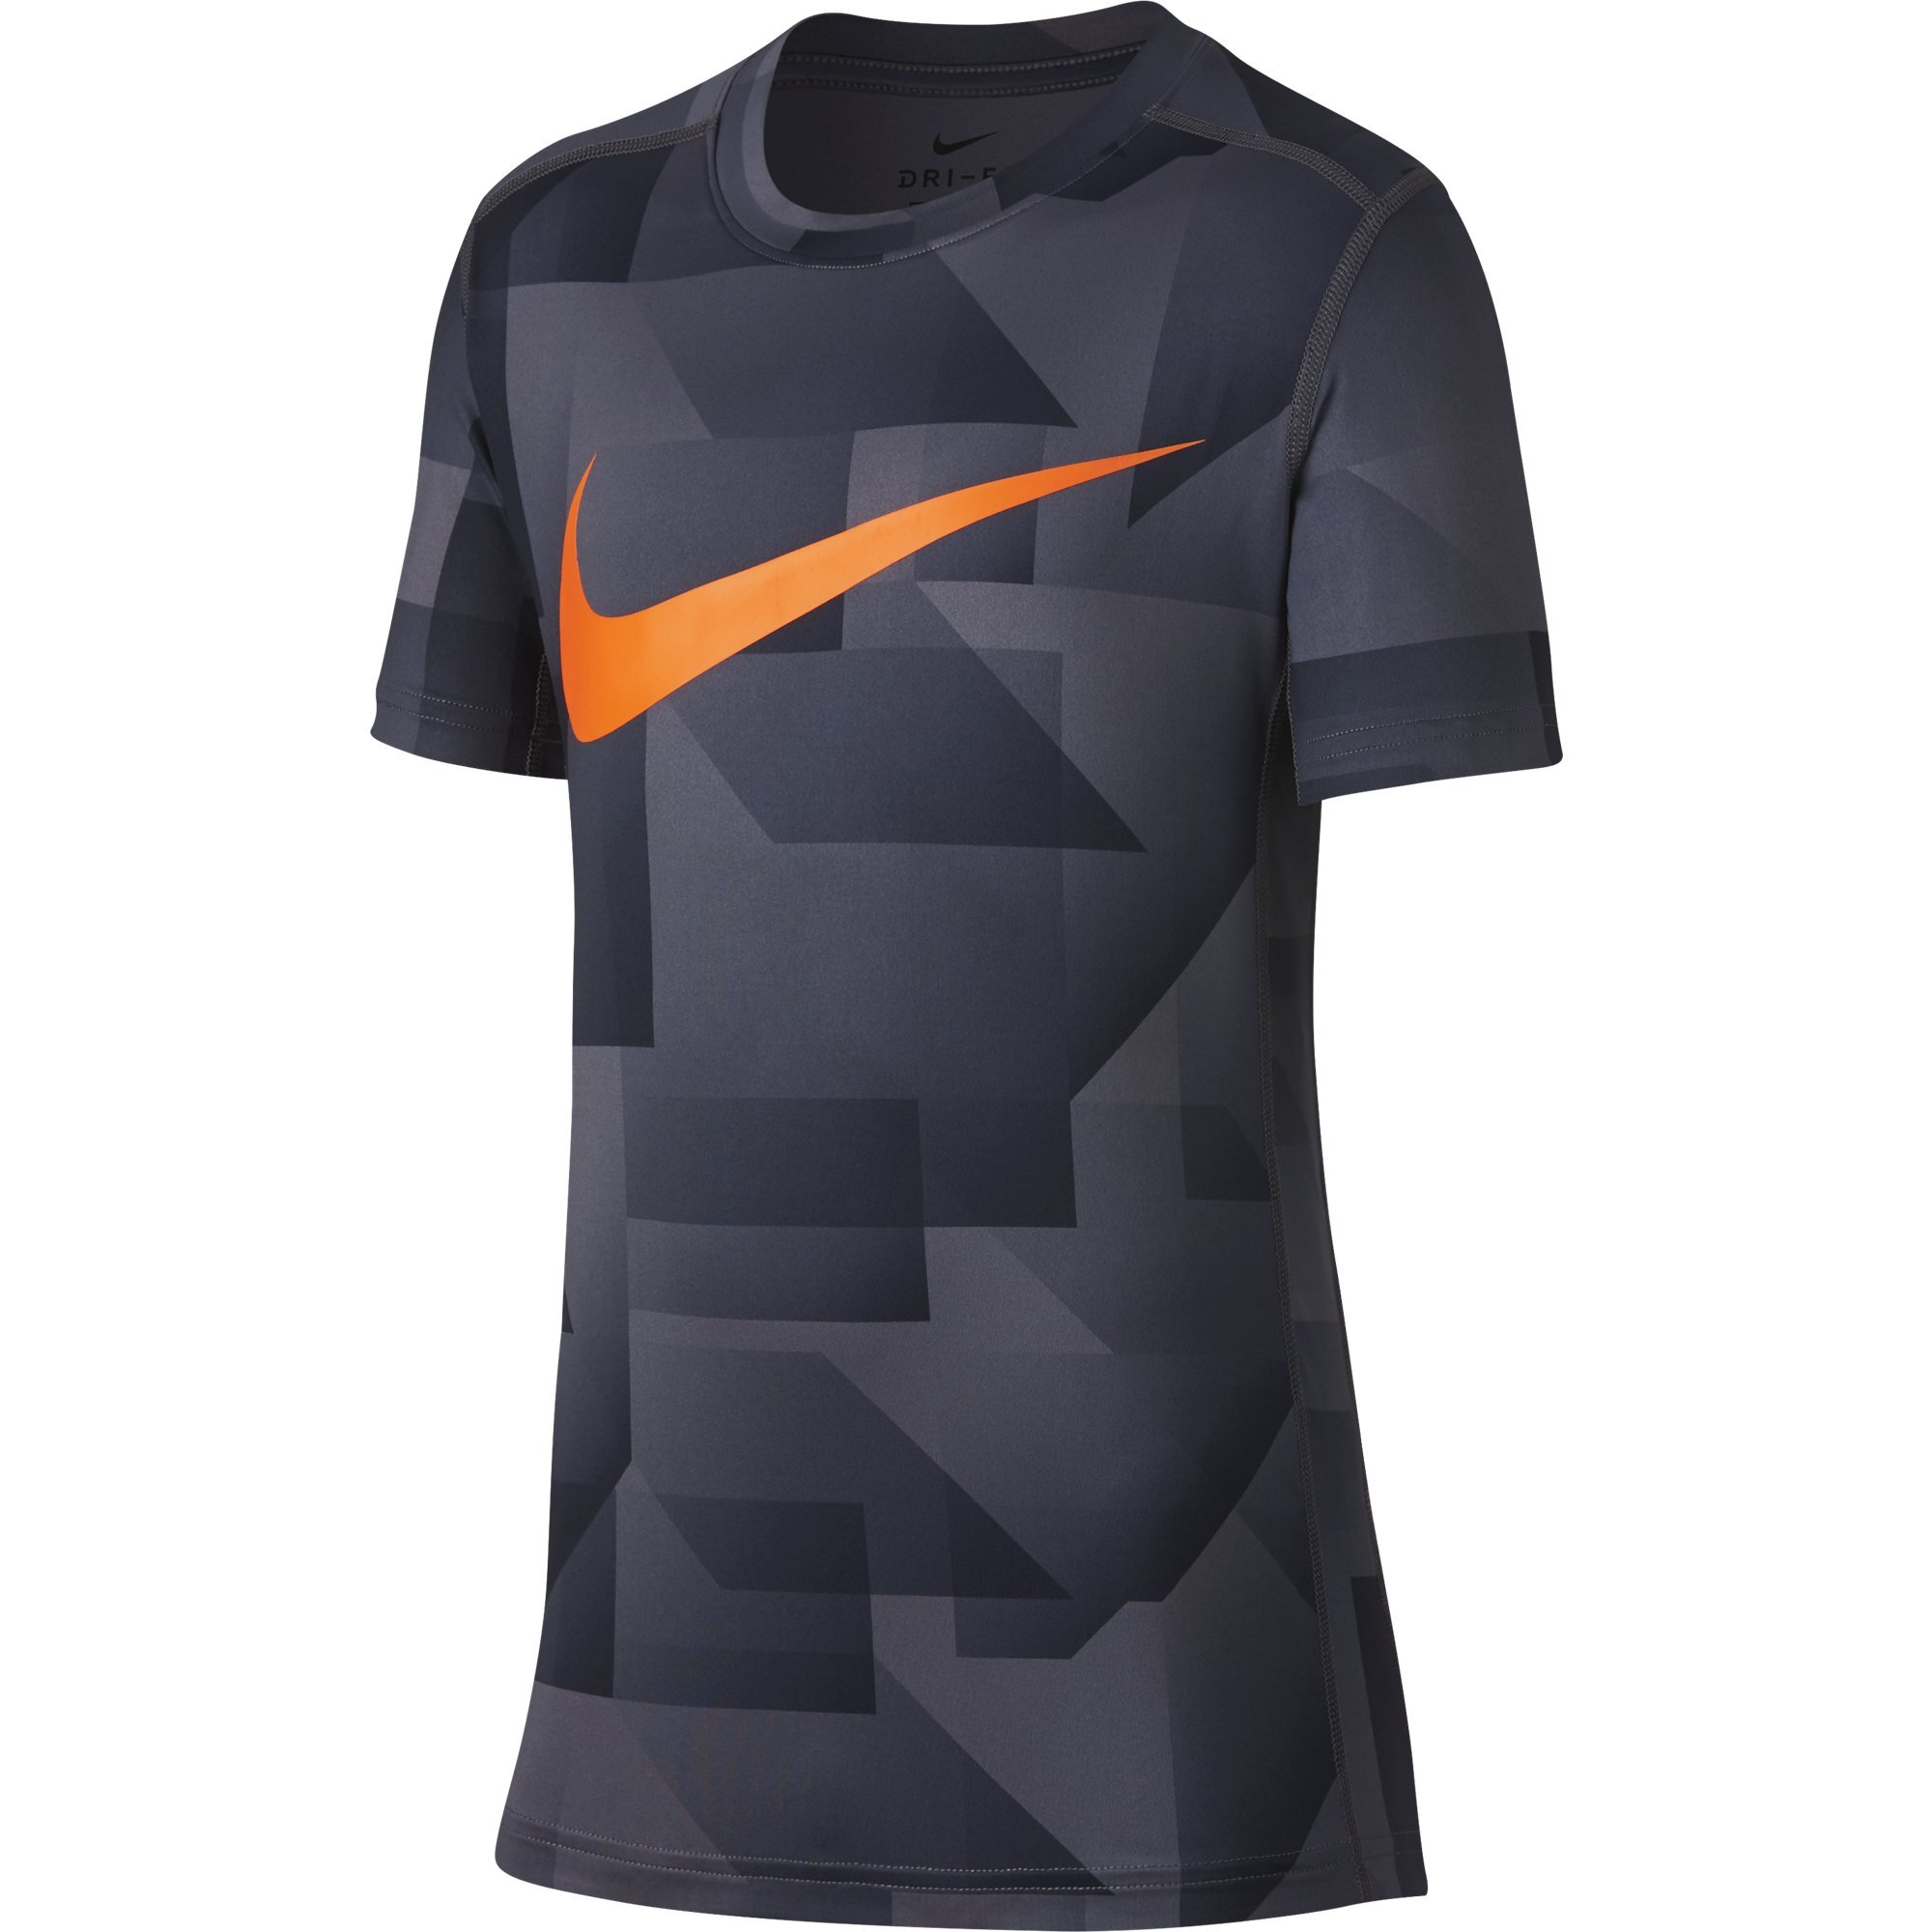 NIKE Boys' Short Sleeve All Over Print Training Top, Light Carbon, X-Large